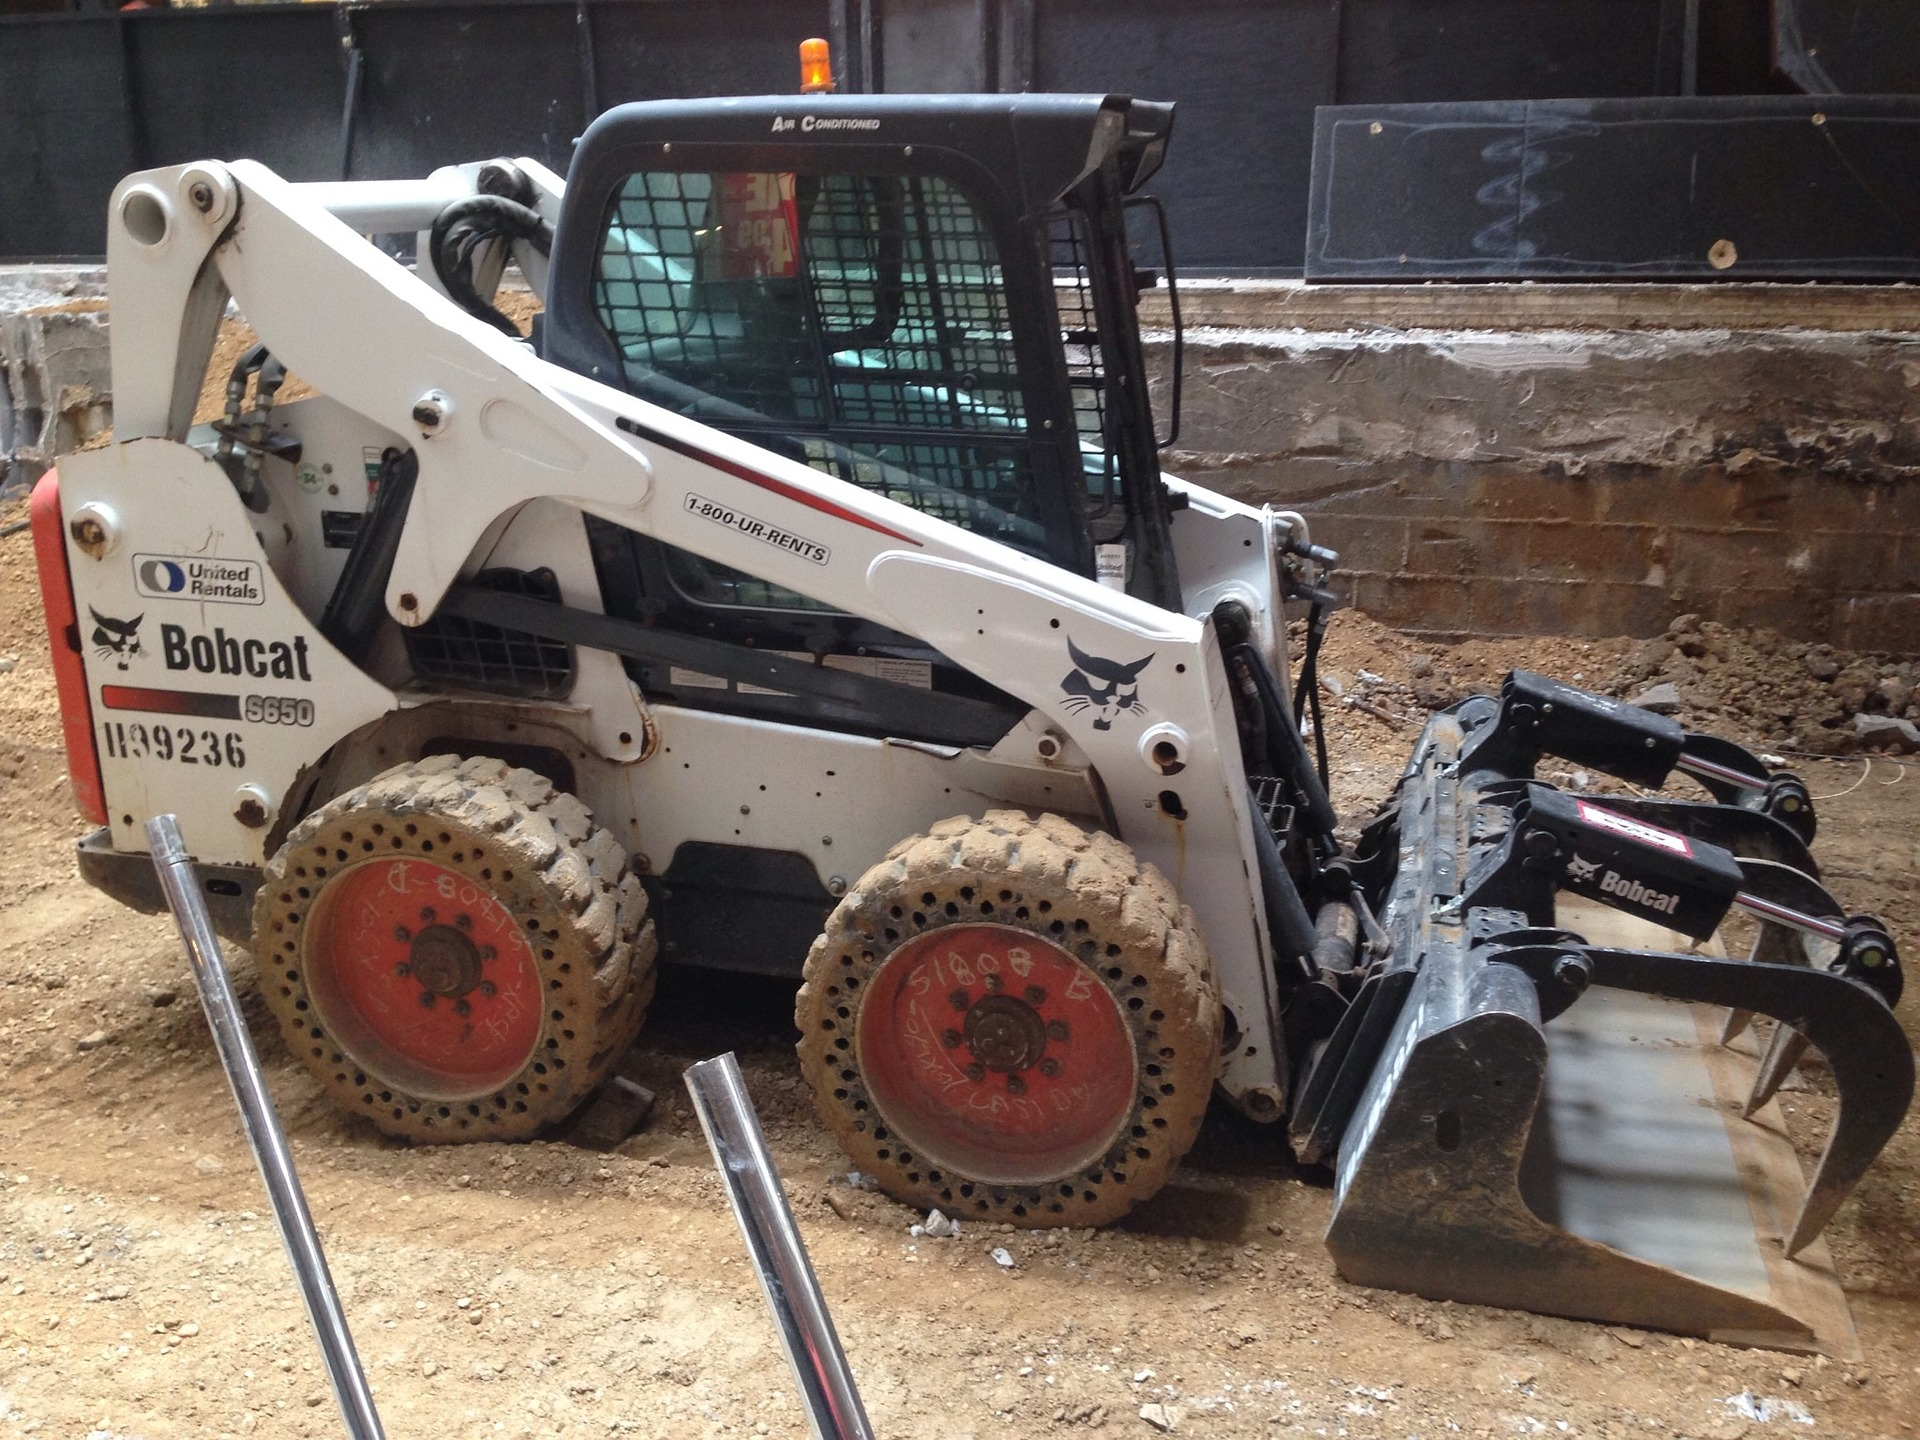 Skid steer, compact and front loaders are all earthmovers used to take the heavy lifting out of building a pumptrack.